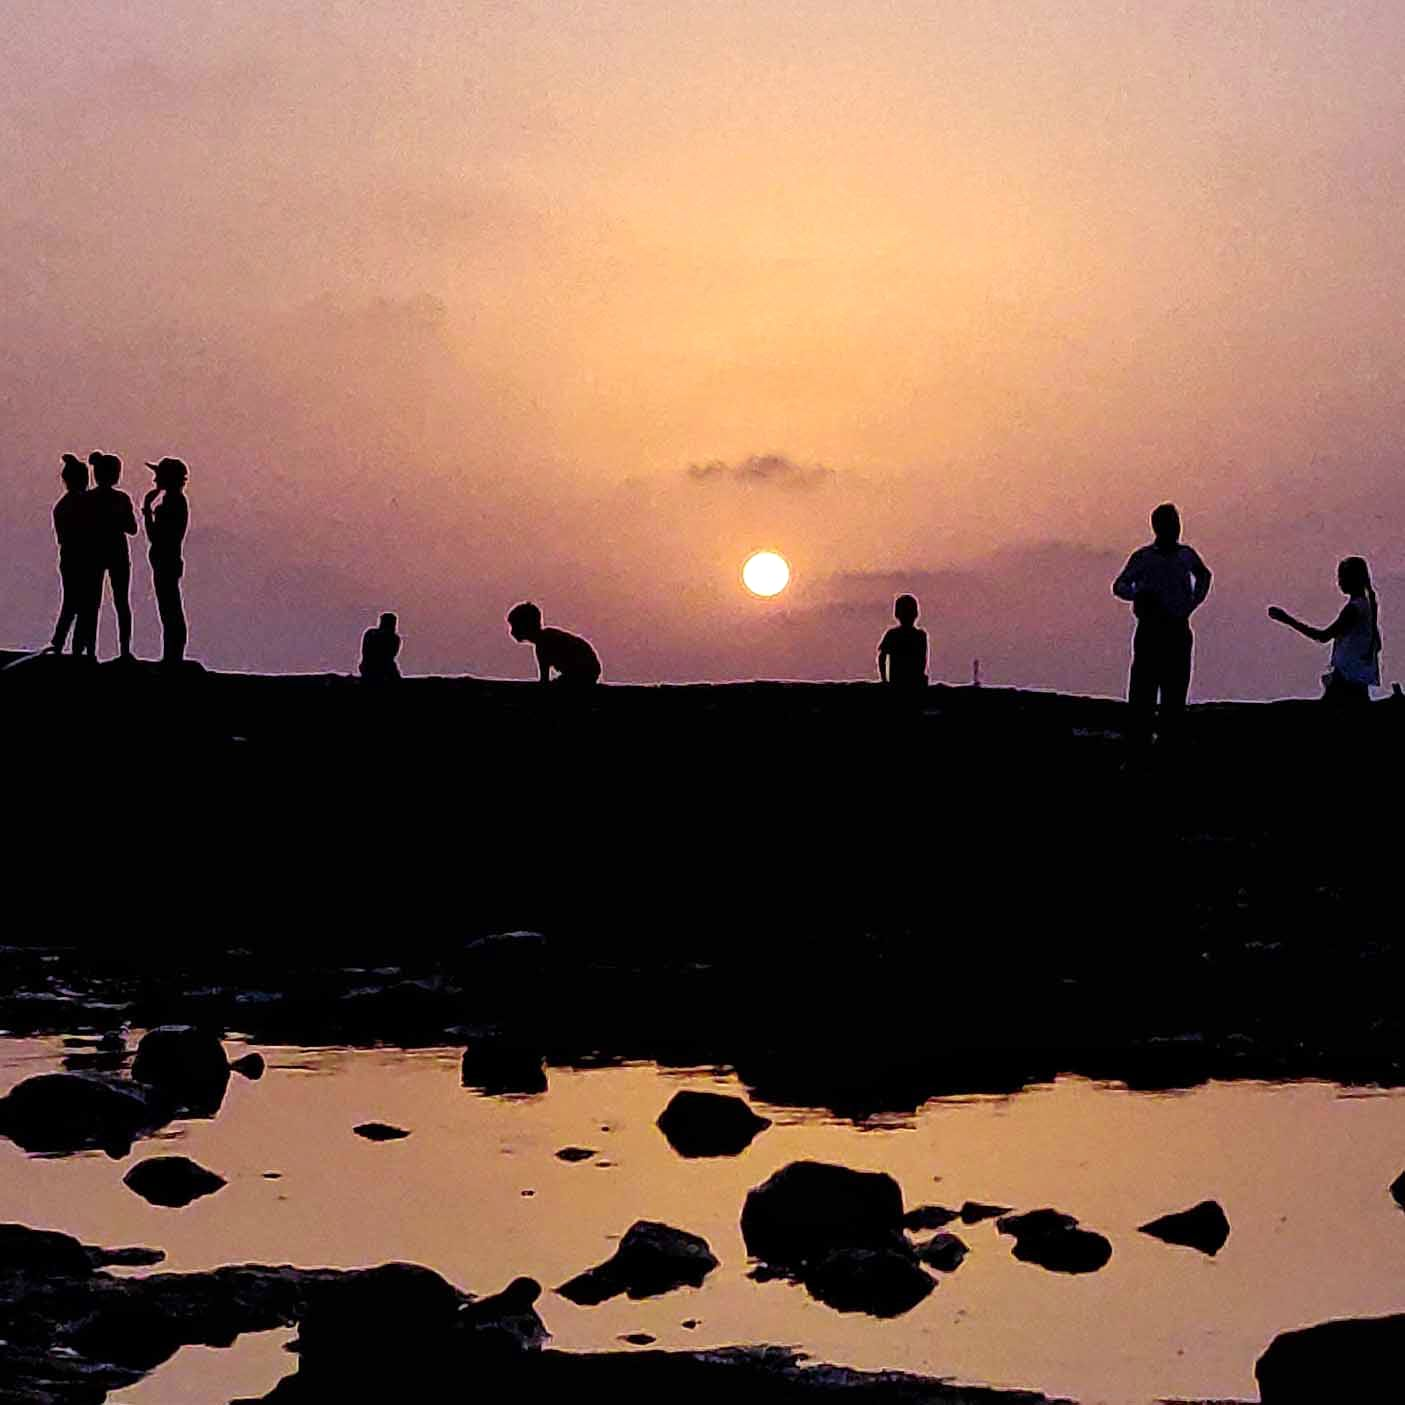 People in nature,Sky,Water,Silhouette,Sunset,Reflection,Horizon,Sea,Cloud,Evening